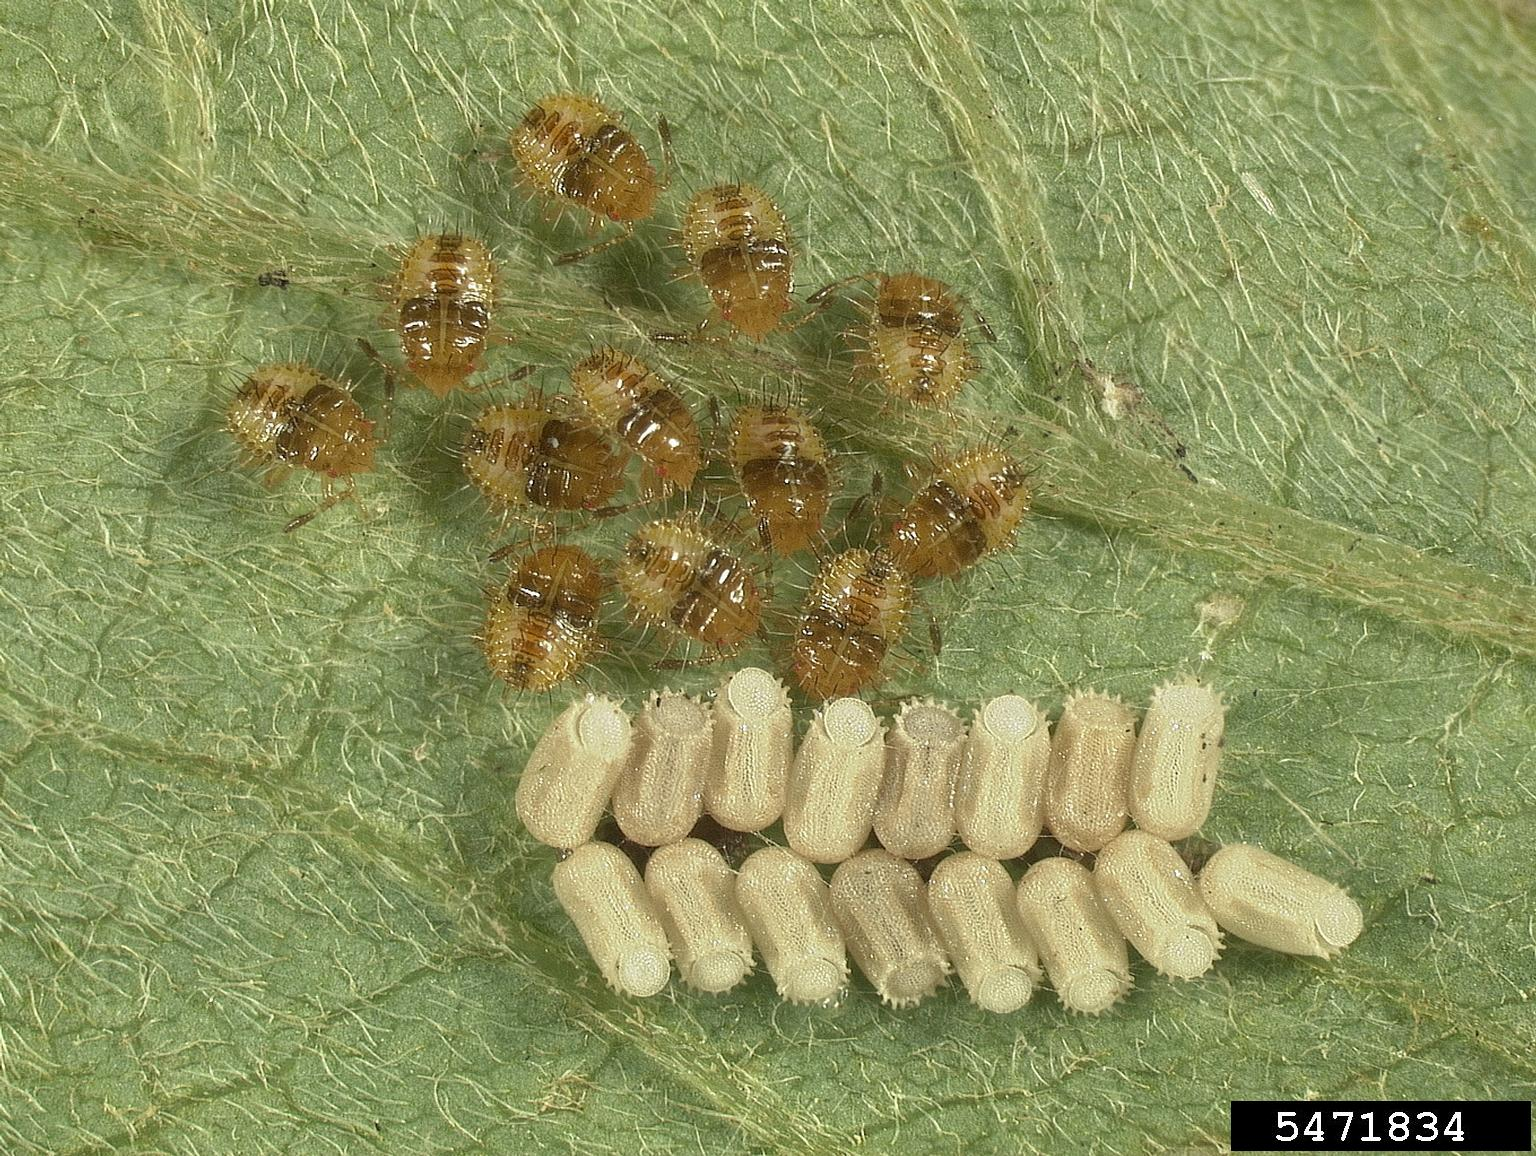 A University of Georgia scientist has used genetic tools to track the kudzu bug back to Japan. She also found all the bugs in the U.S. are maternally related.